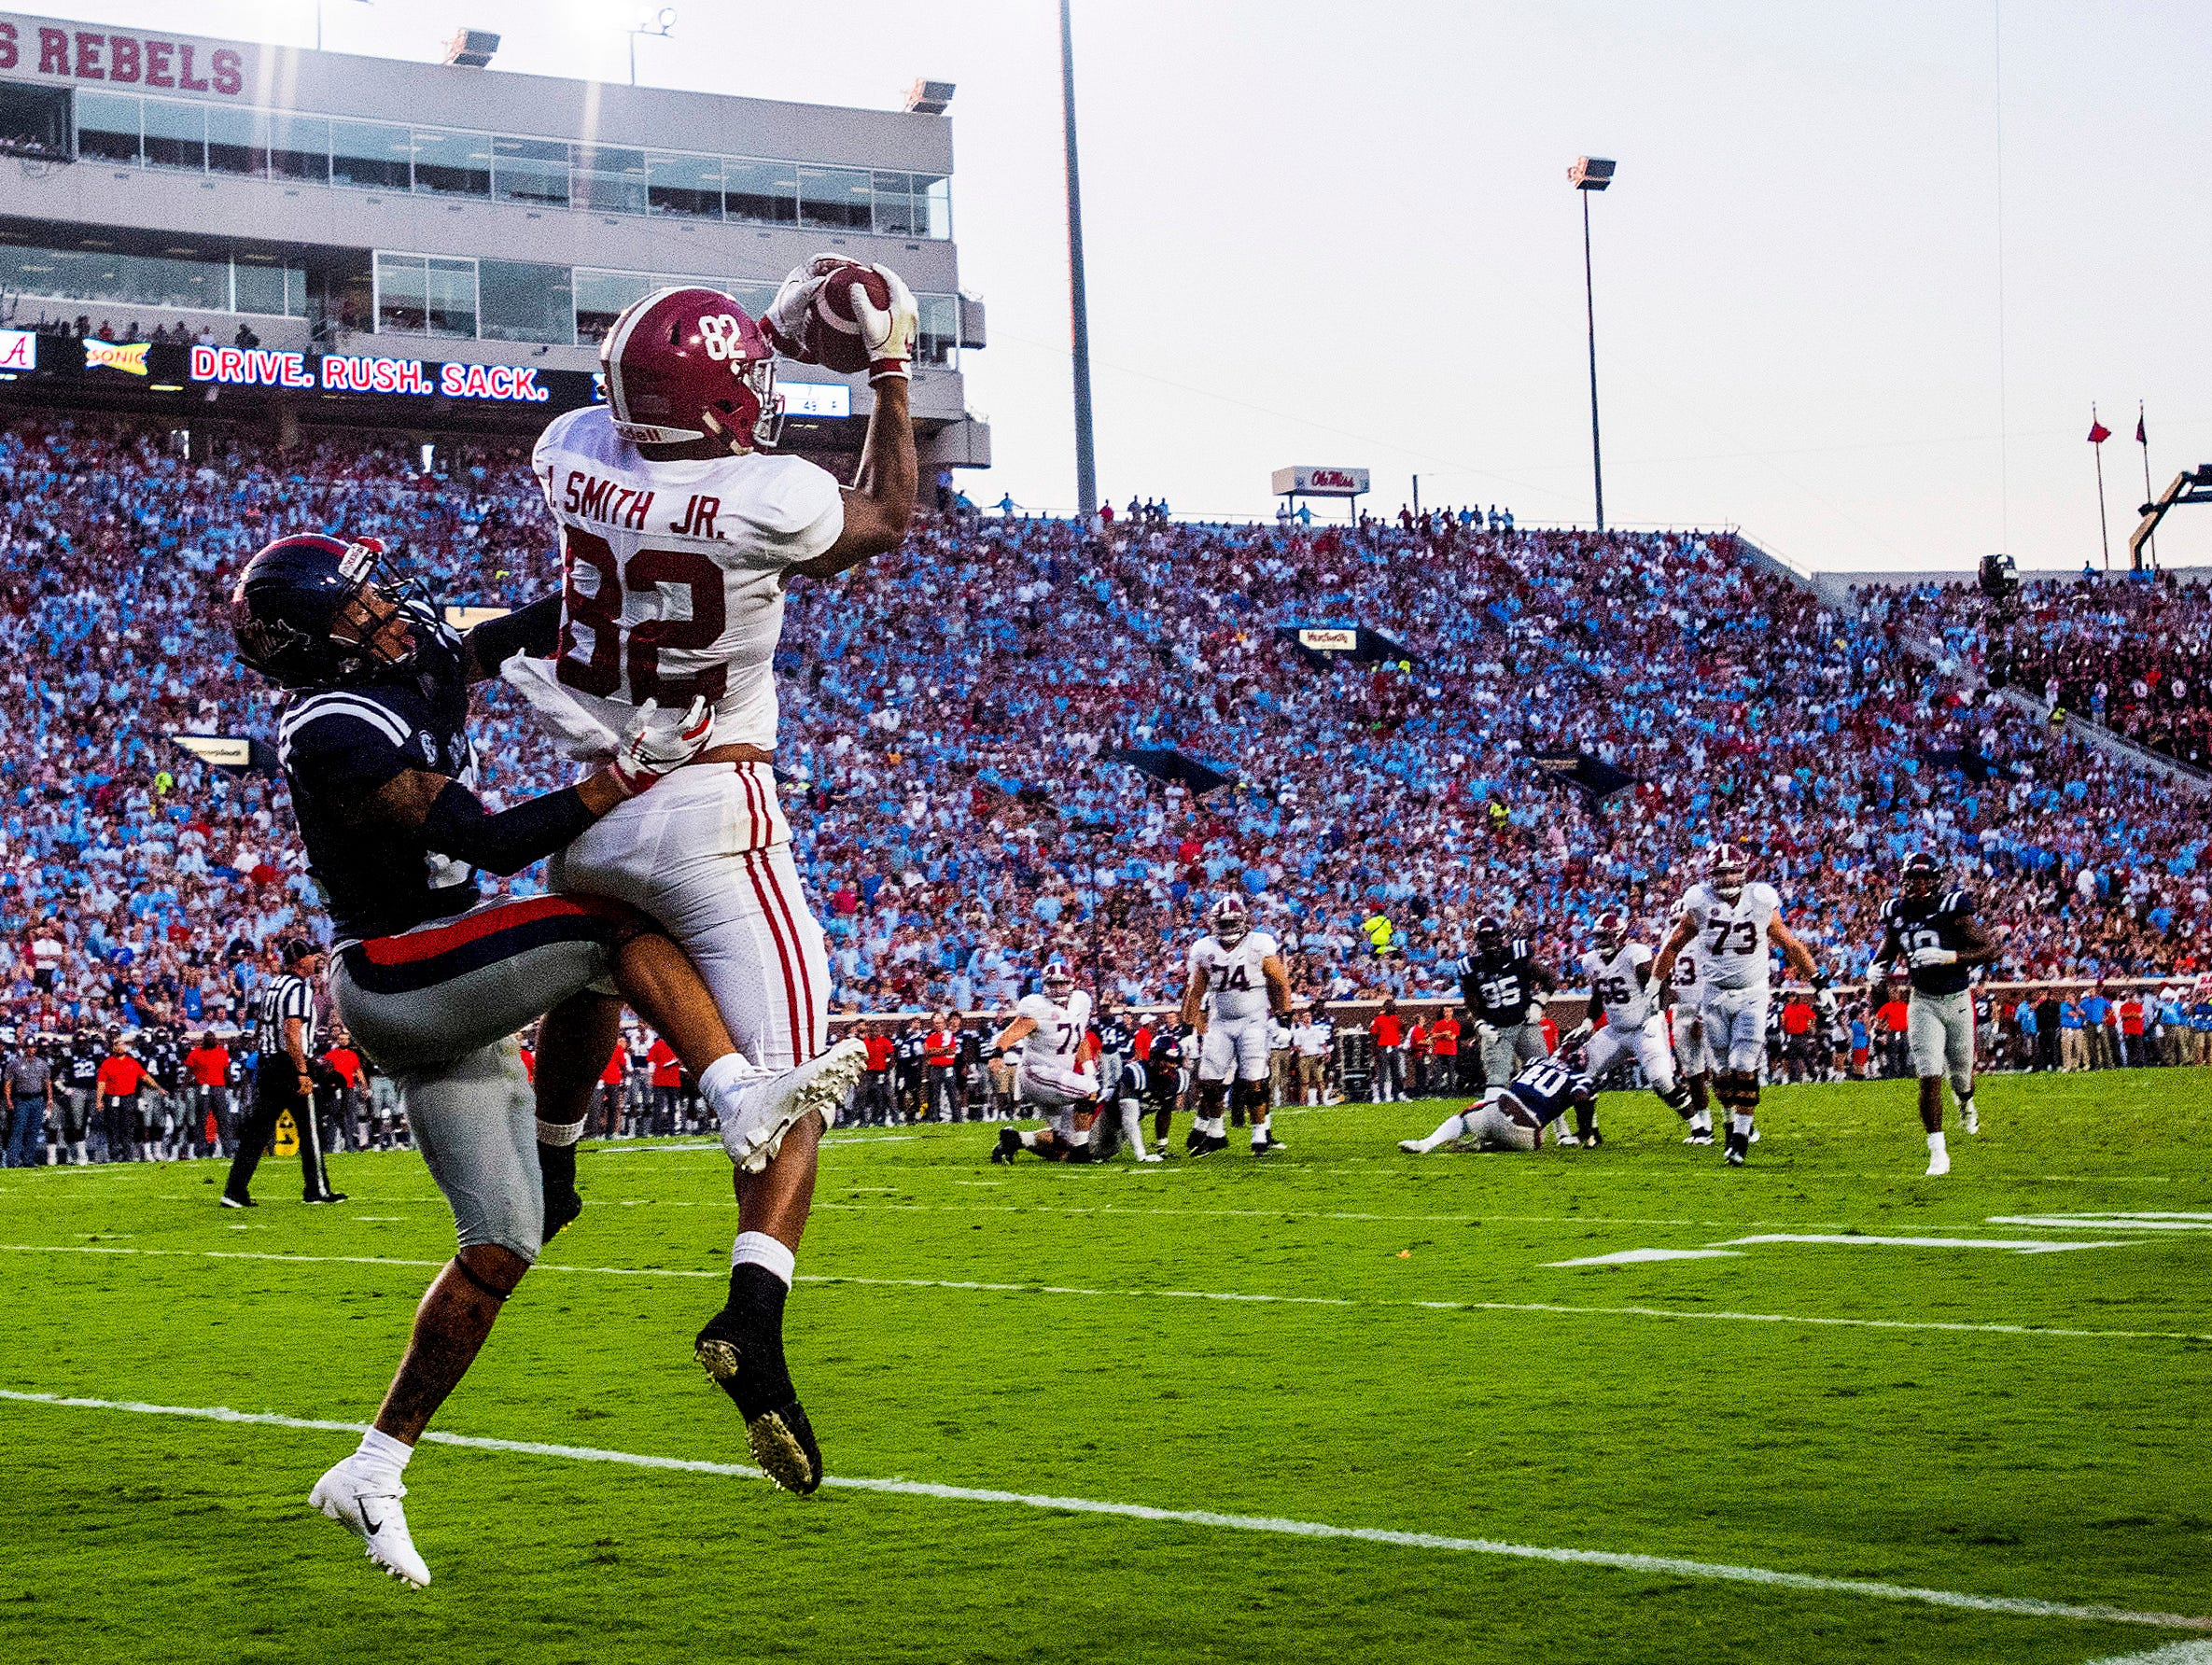 Alabama tight end Irv Smith Jr. (82) catches a touchdown pass against Ole Miss defensive back Javien Hamilton (21) In first half action in Oxford, Ms., on Saturday September 15, 2018.